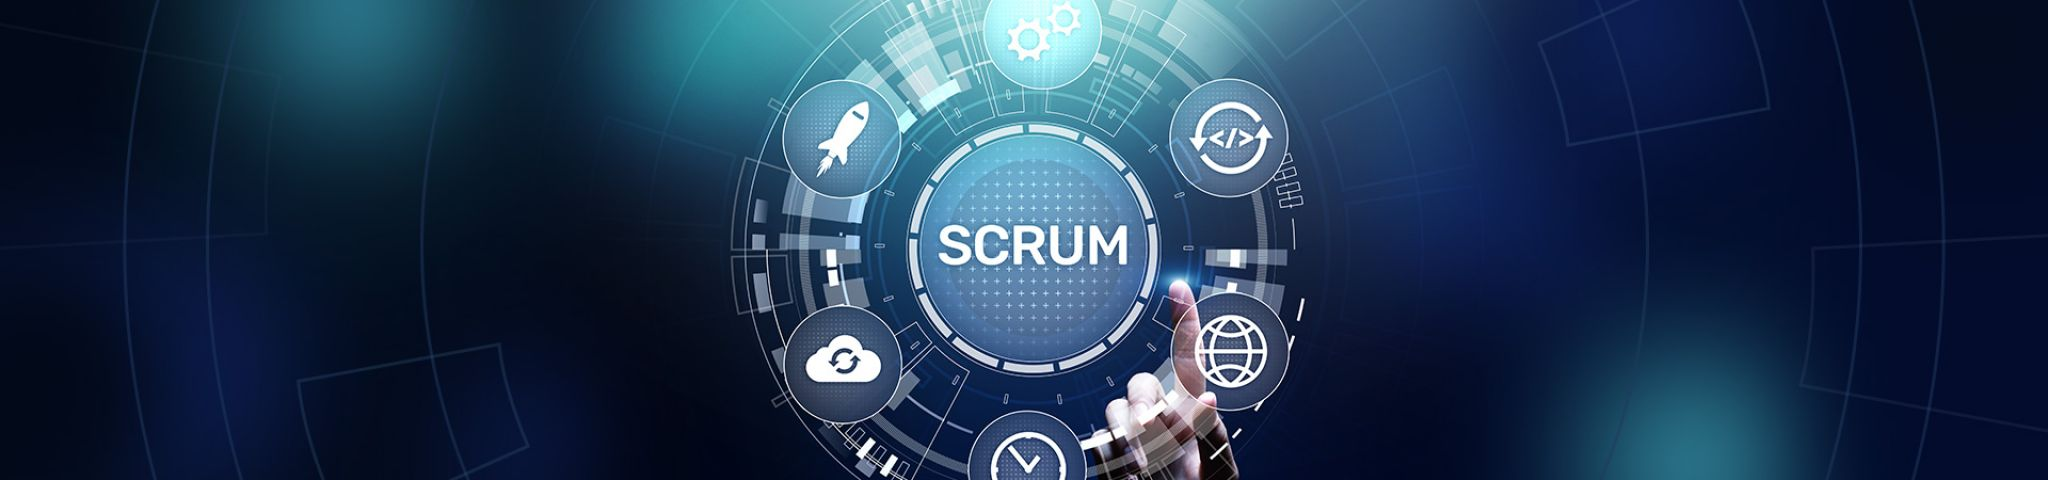 Polarixpartner agile management scrum